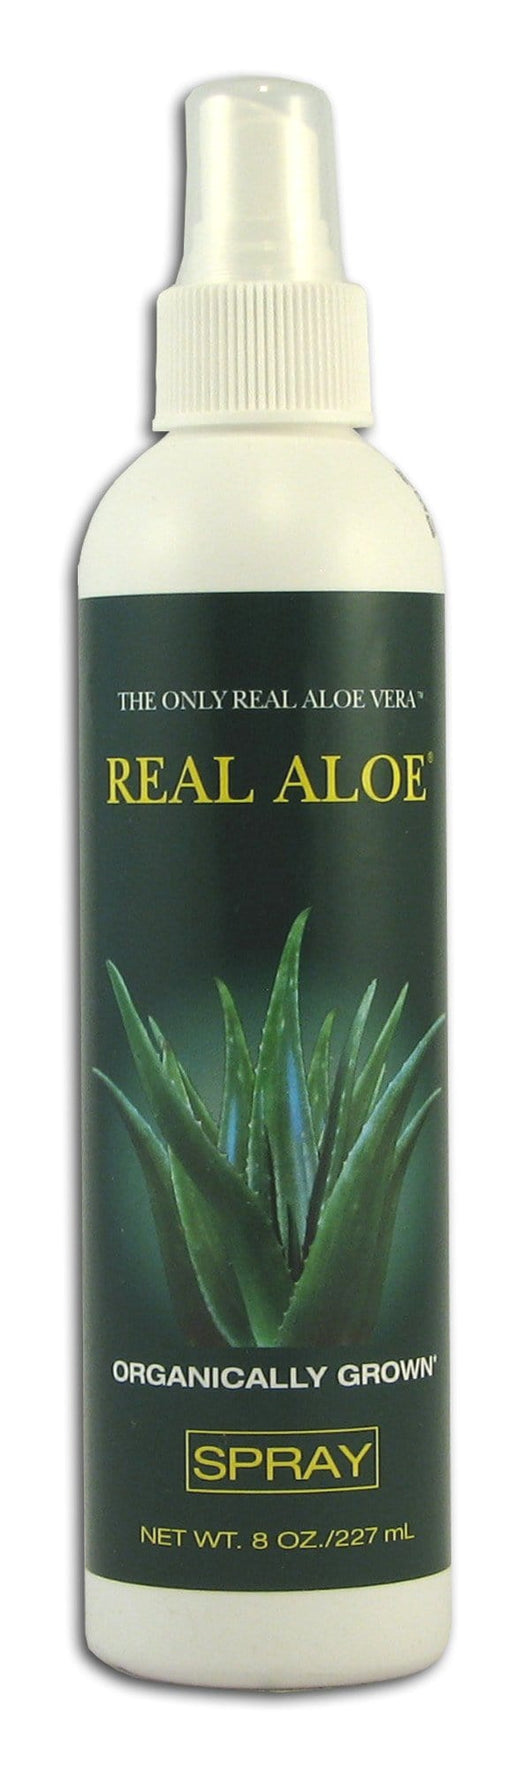 Real Aloe Co. Aloe Vera Spray - 8 ozs.